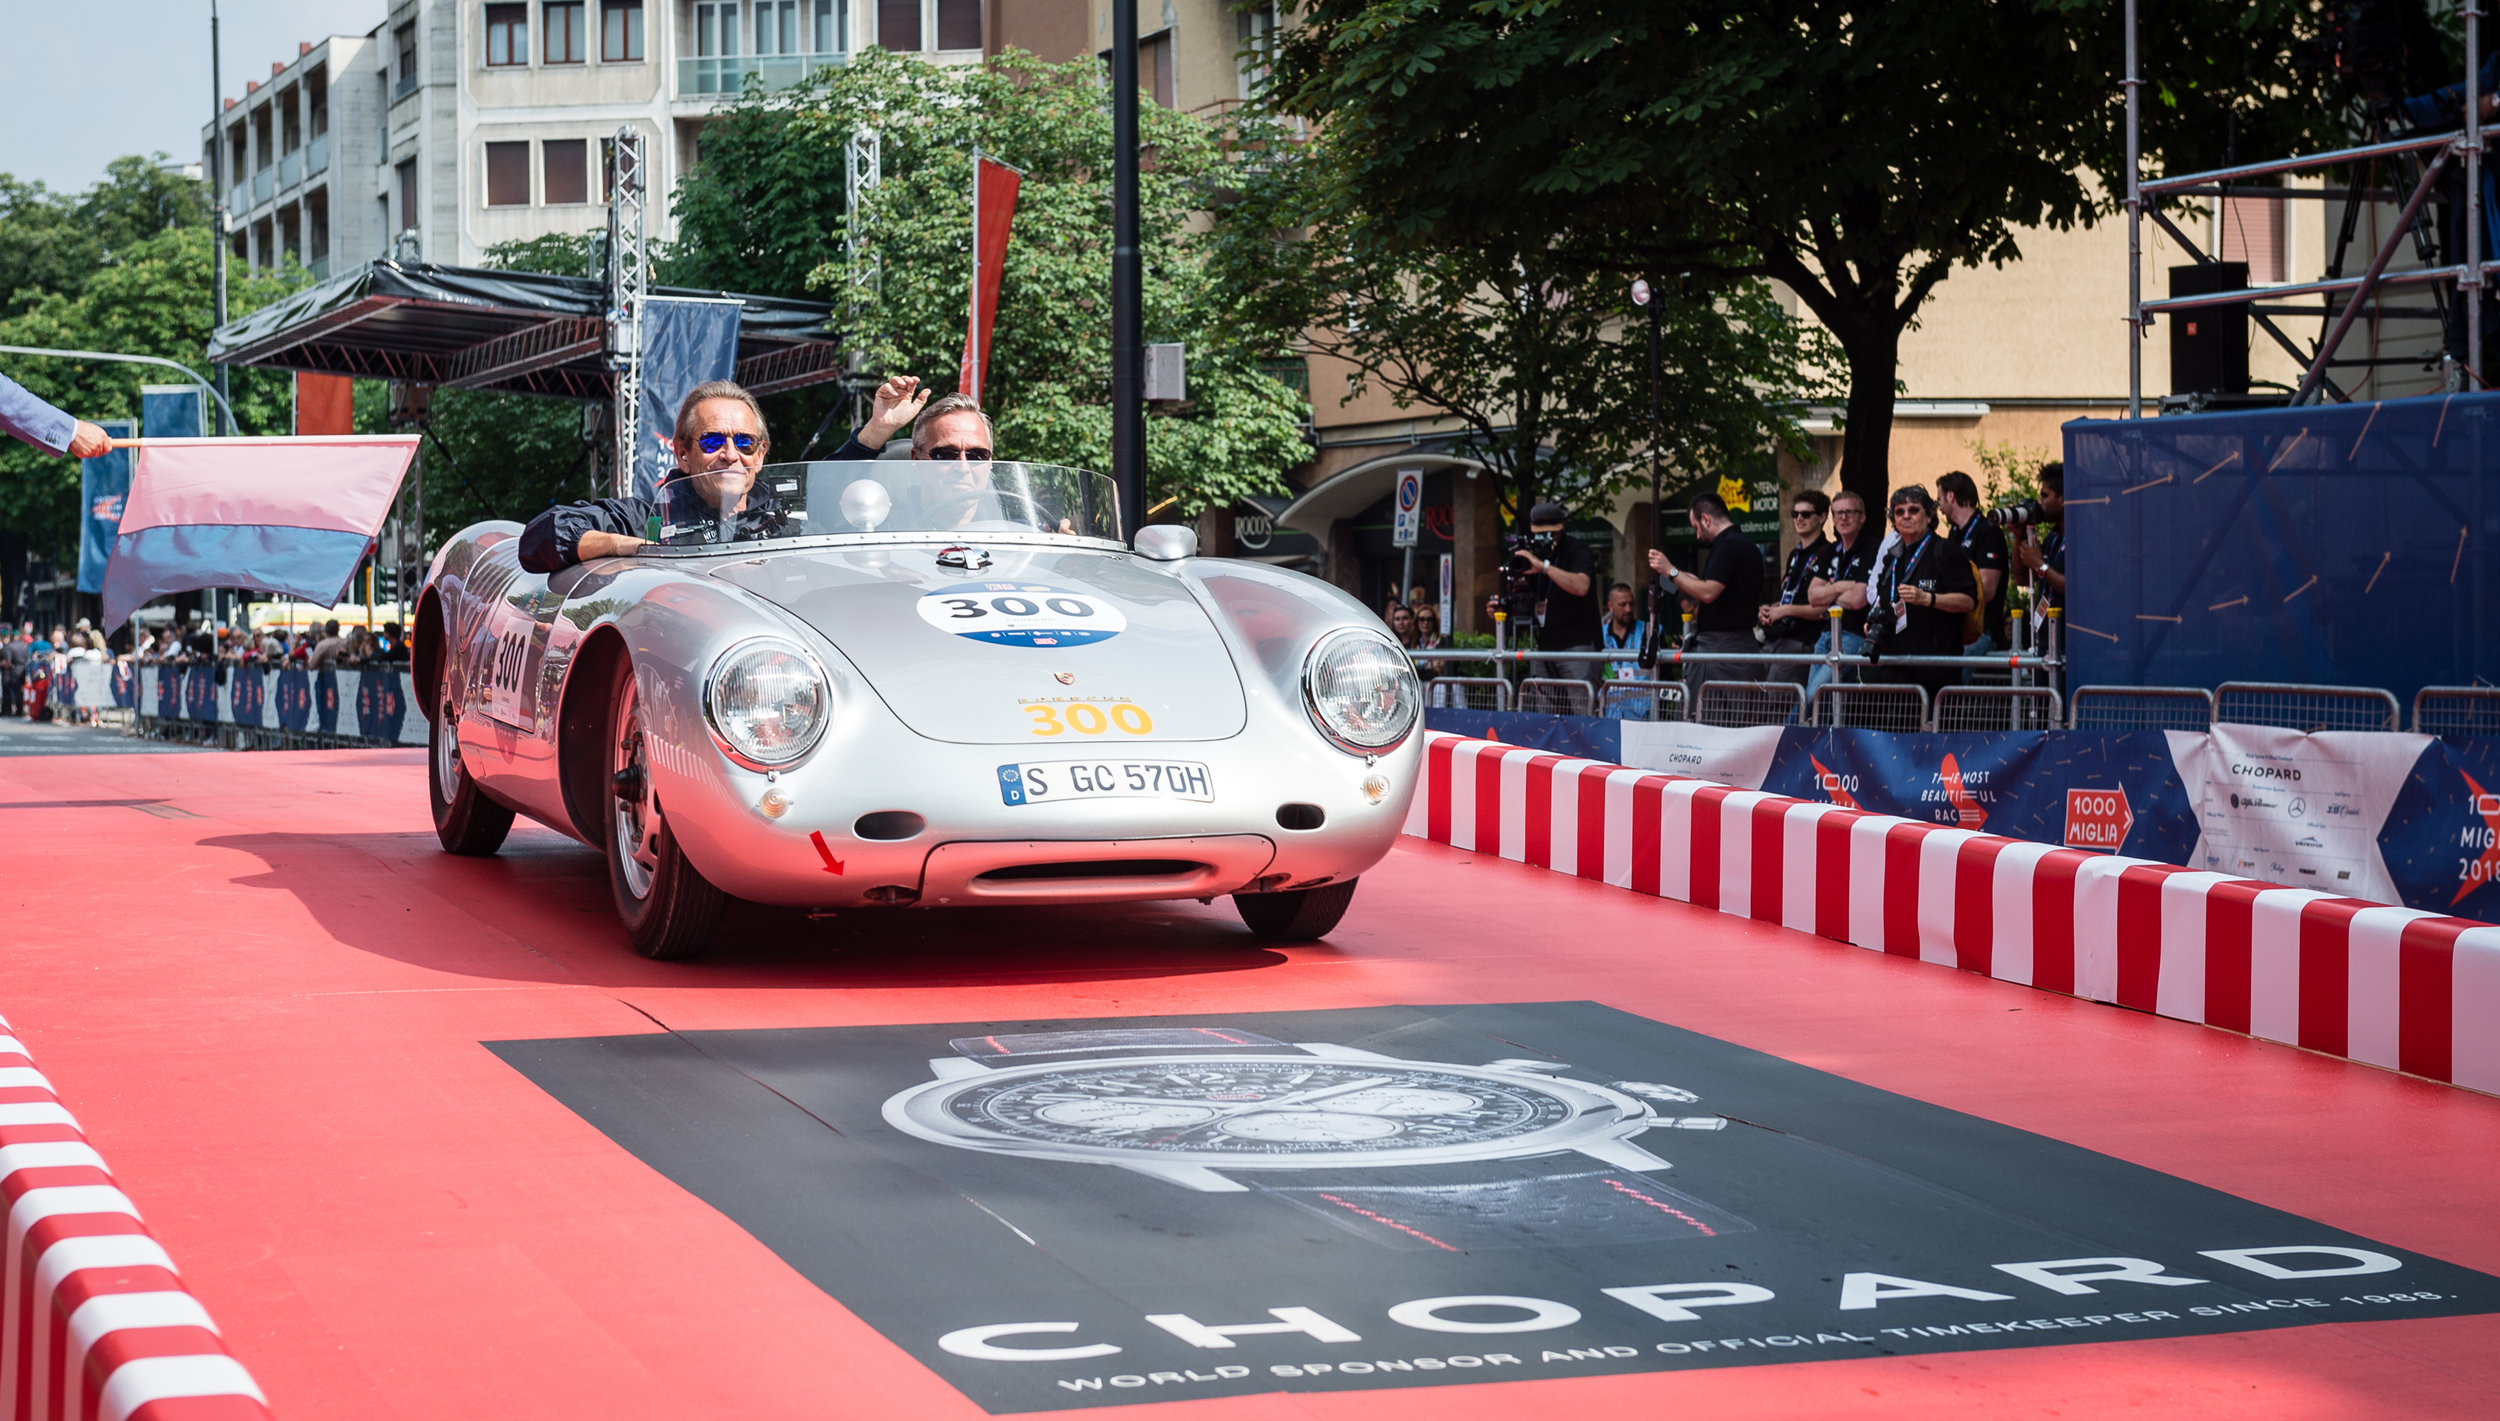 Karl-Friedrich Scheufele and Jacky Ickx leaving the famous ramp of the Mille Miglia for the 1000 miles race..jpg